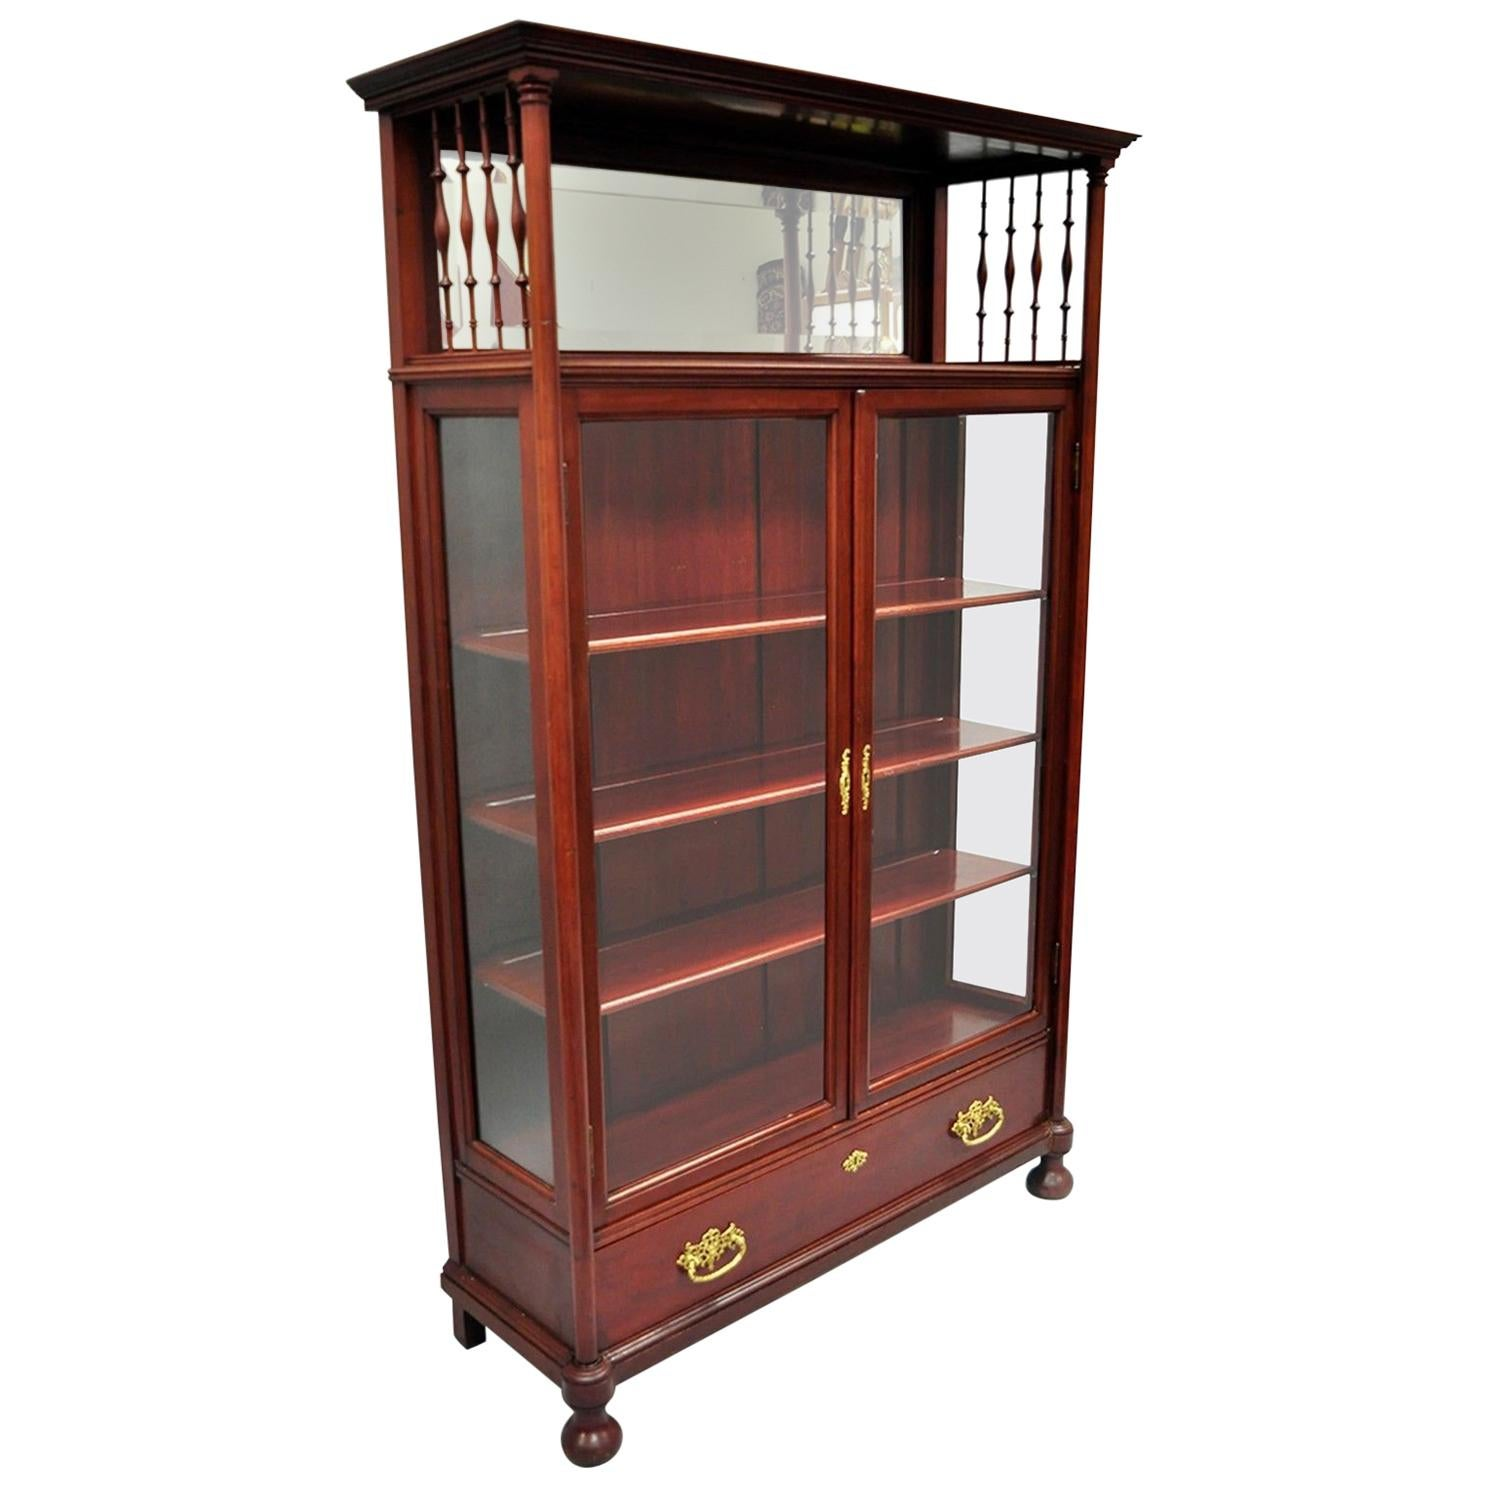 Antique Victorian Two Door Mahogany U0026amp; Glass Bookcase Curio Cabinet  Display Shelf